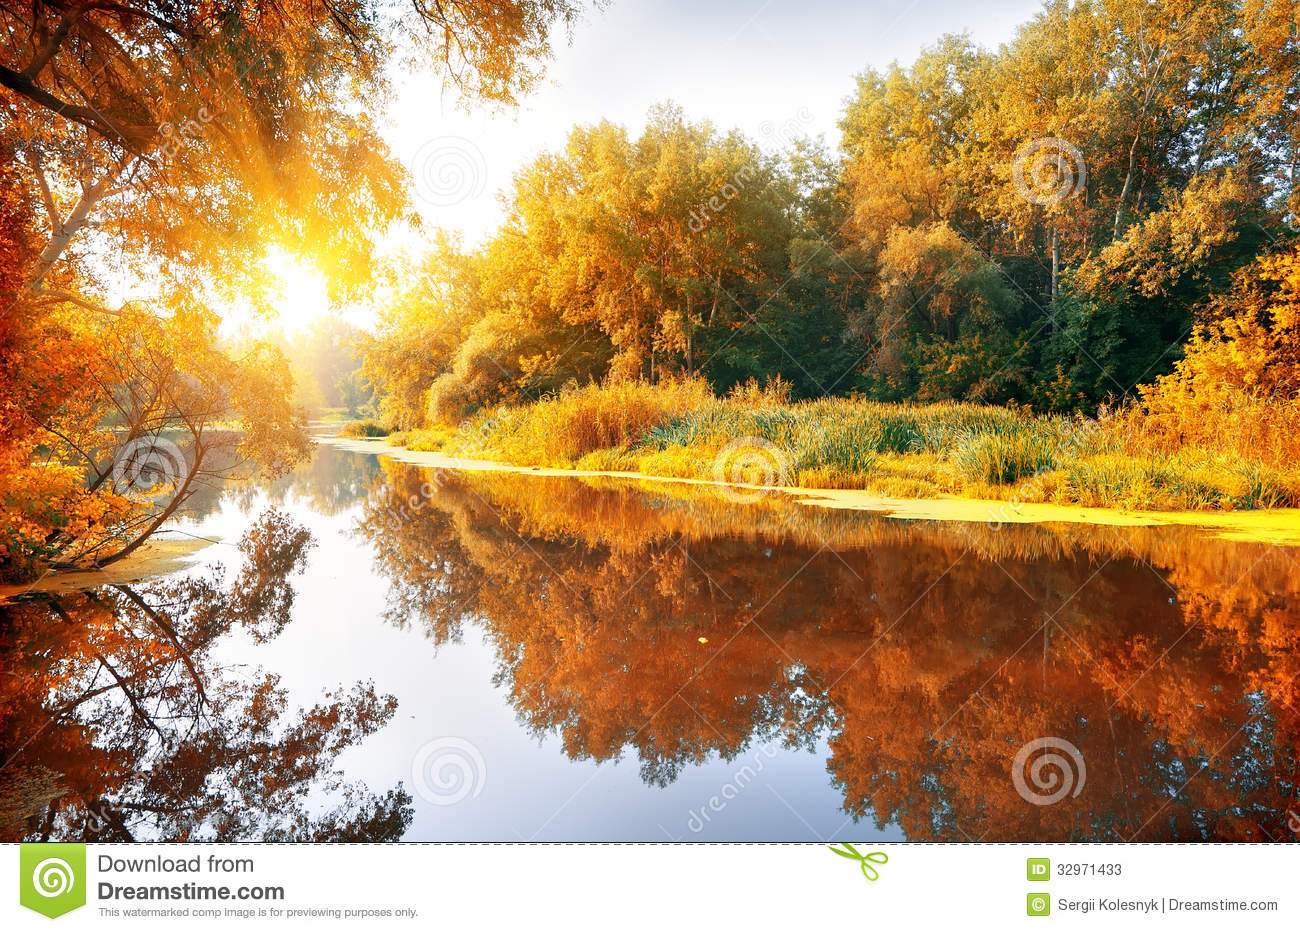 Fall Colors Wallpaper Background River In A Delightful Autumn Forest Stock Image Image Of